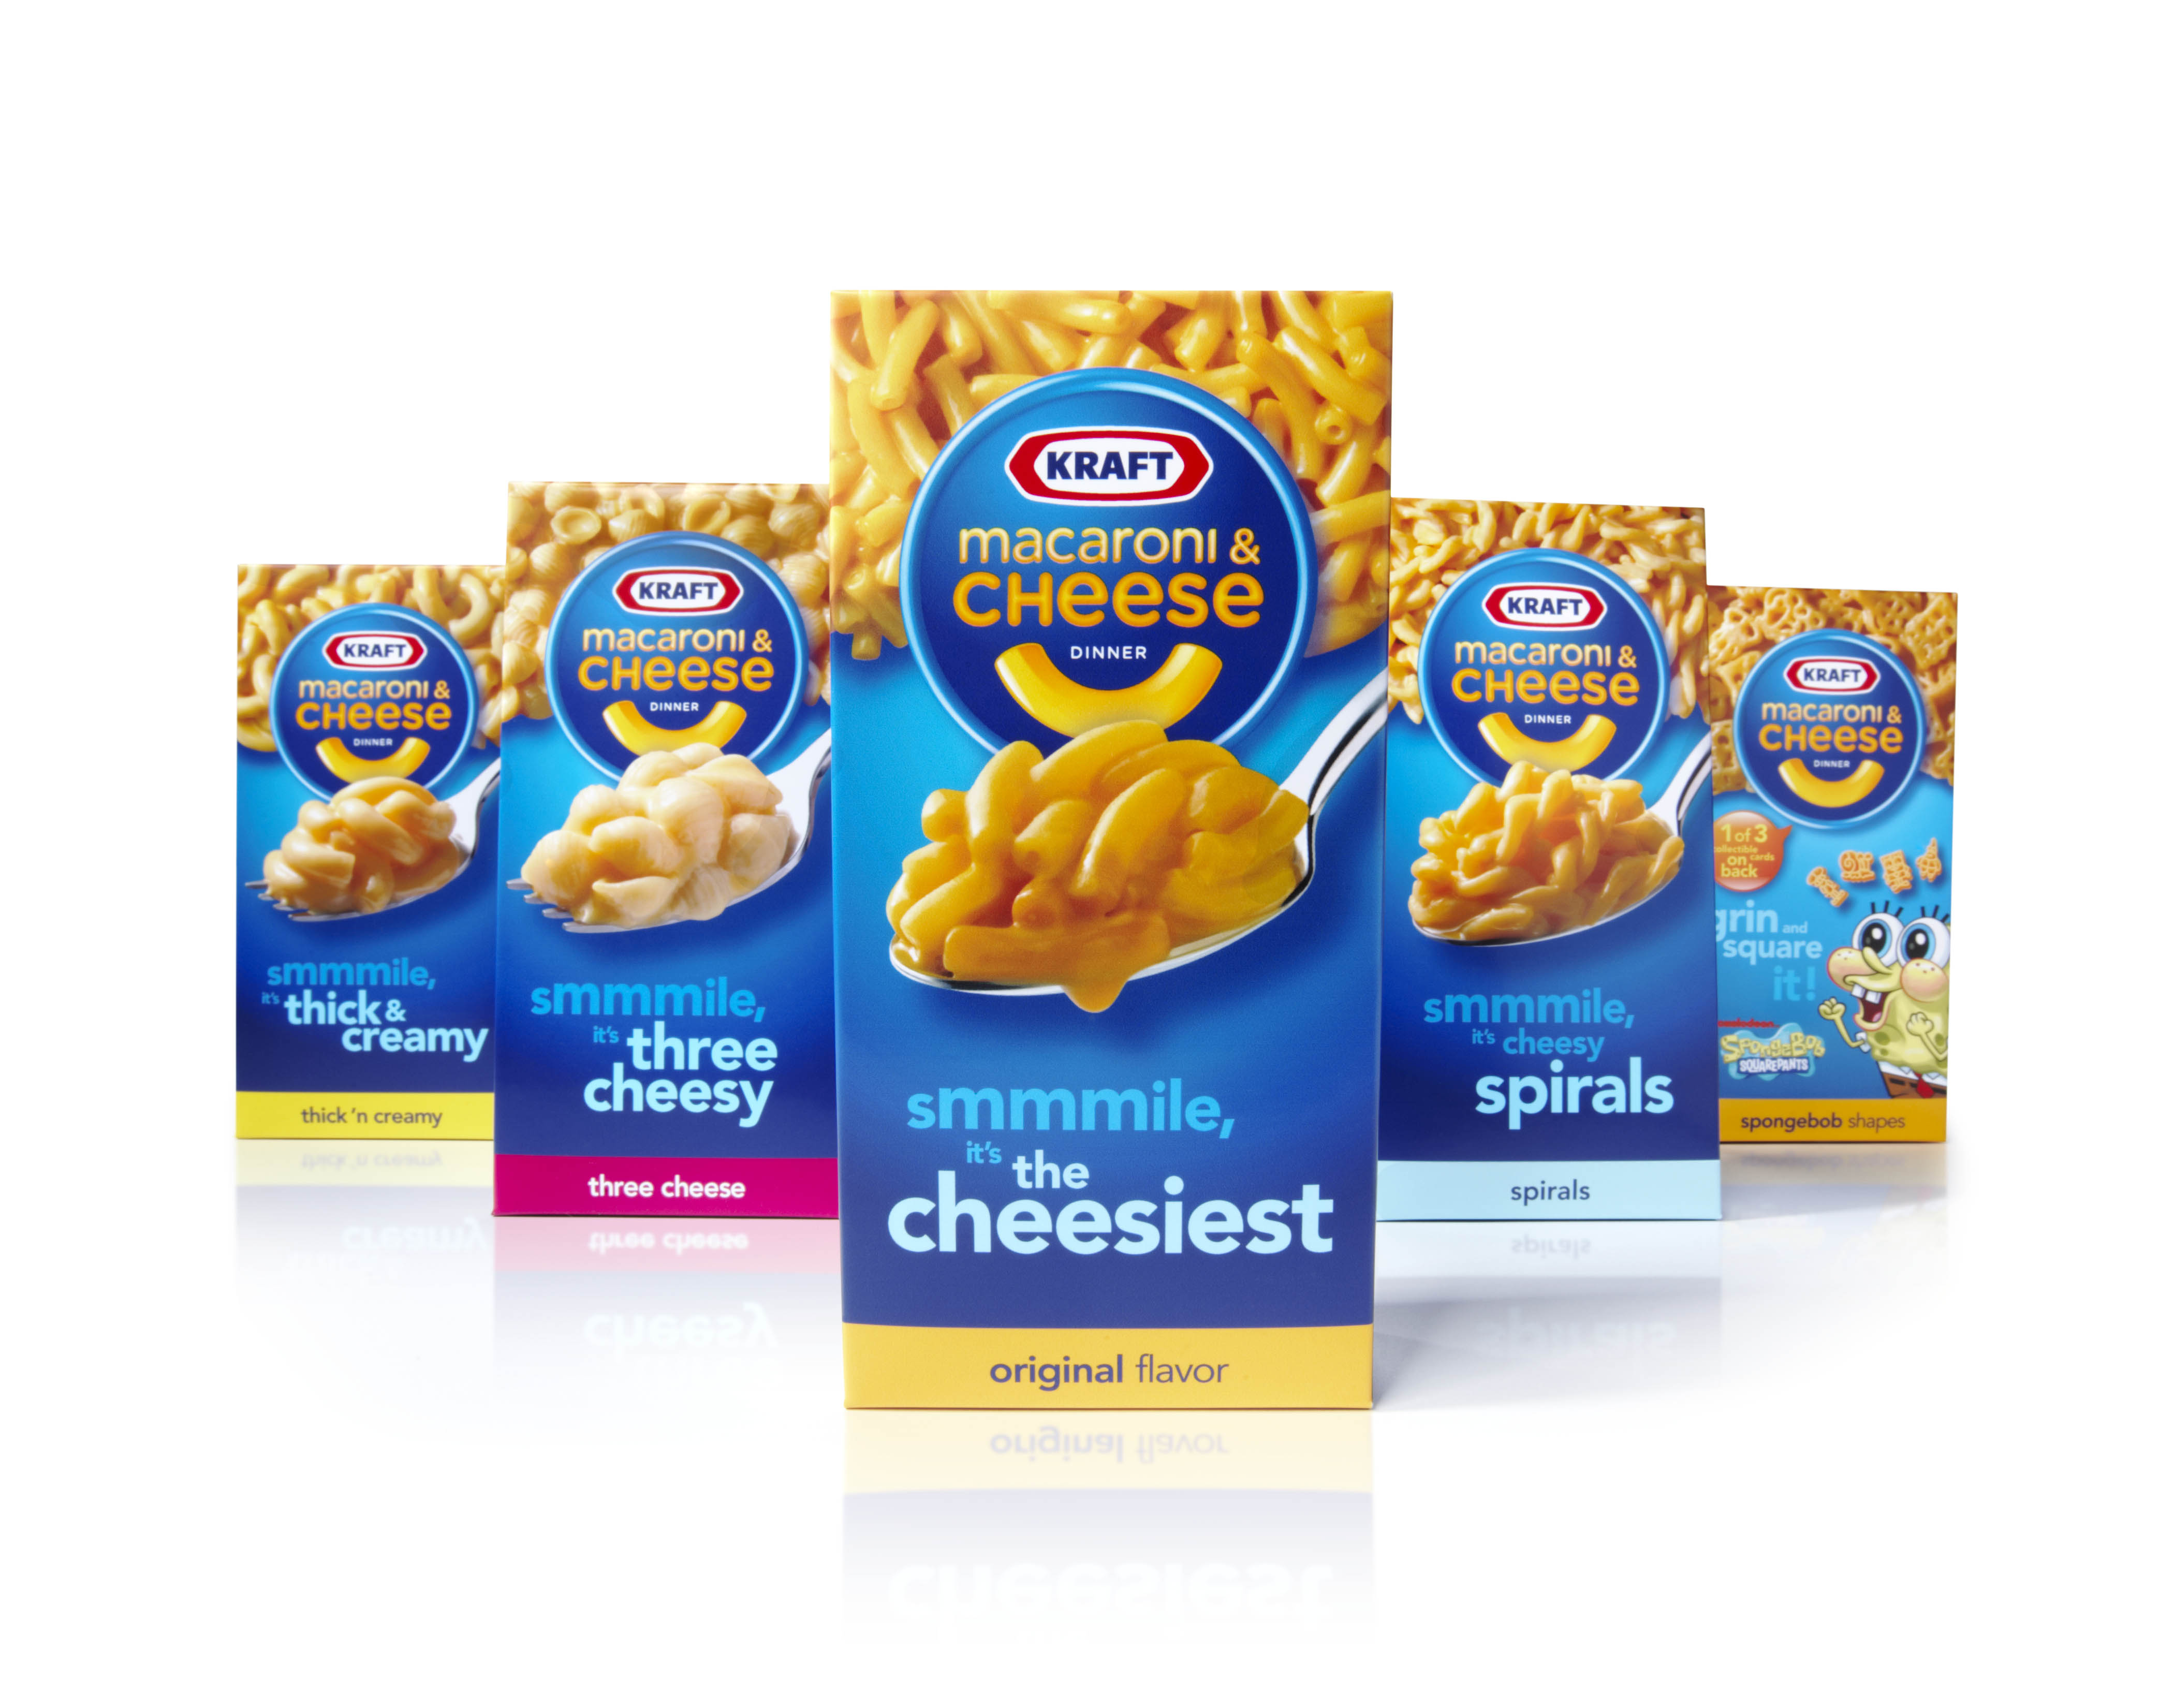 ... the bewildering varieties of Kraft Macaroni and Cheese now available